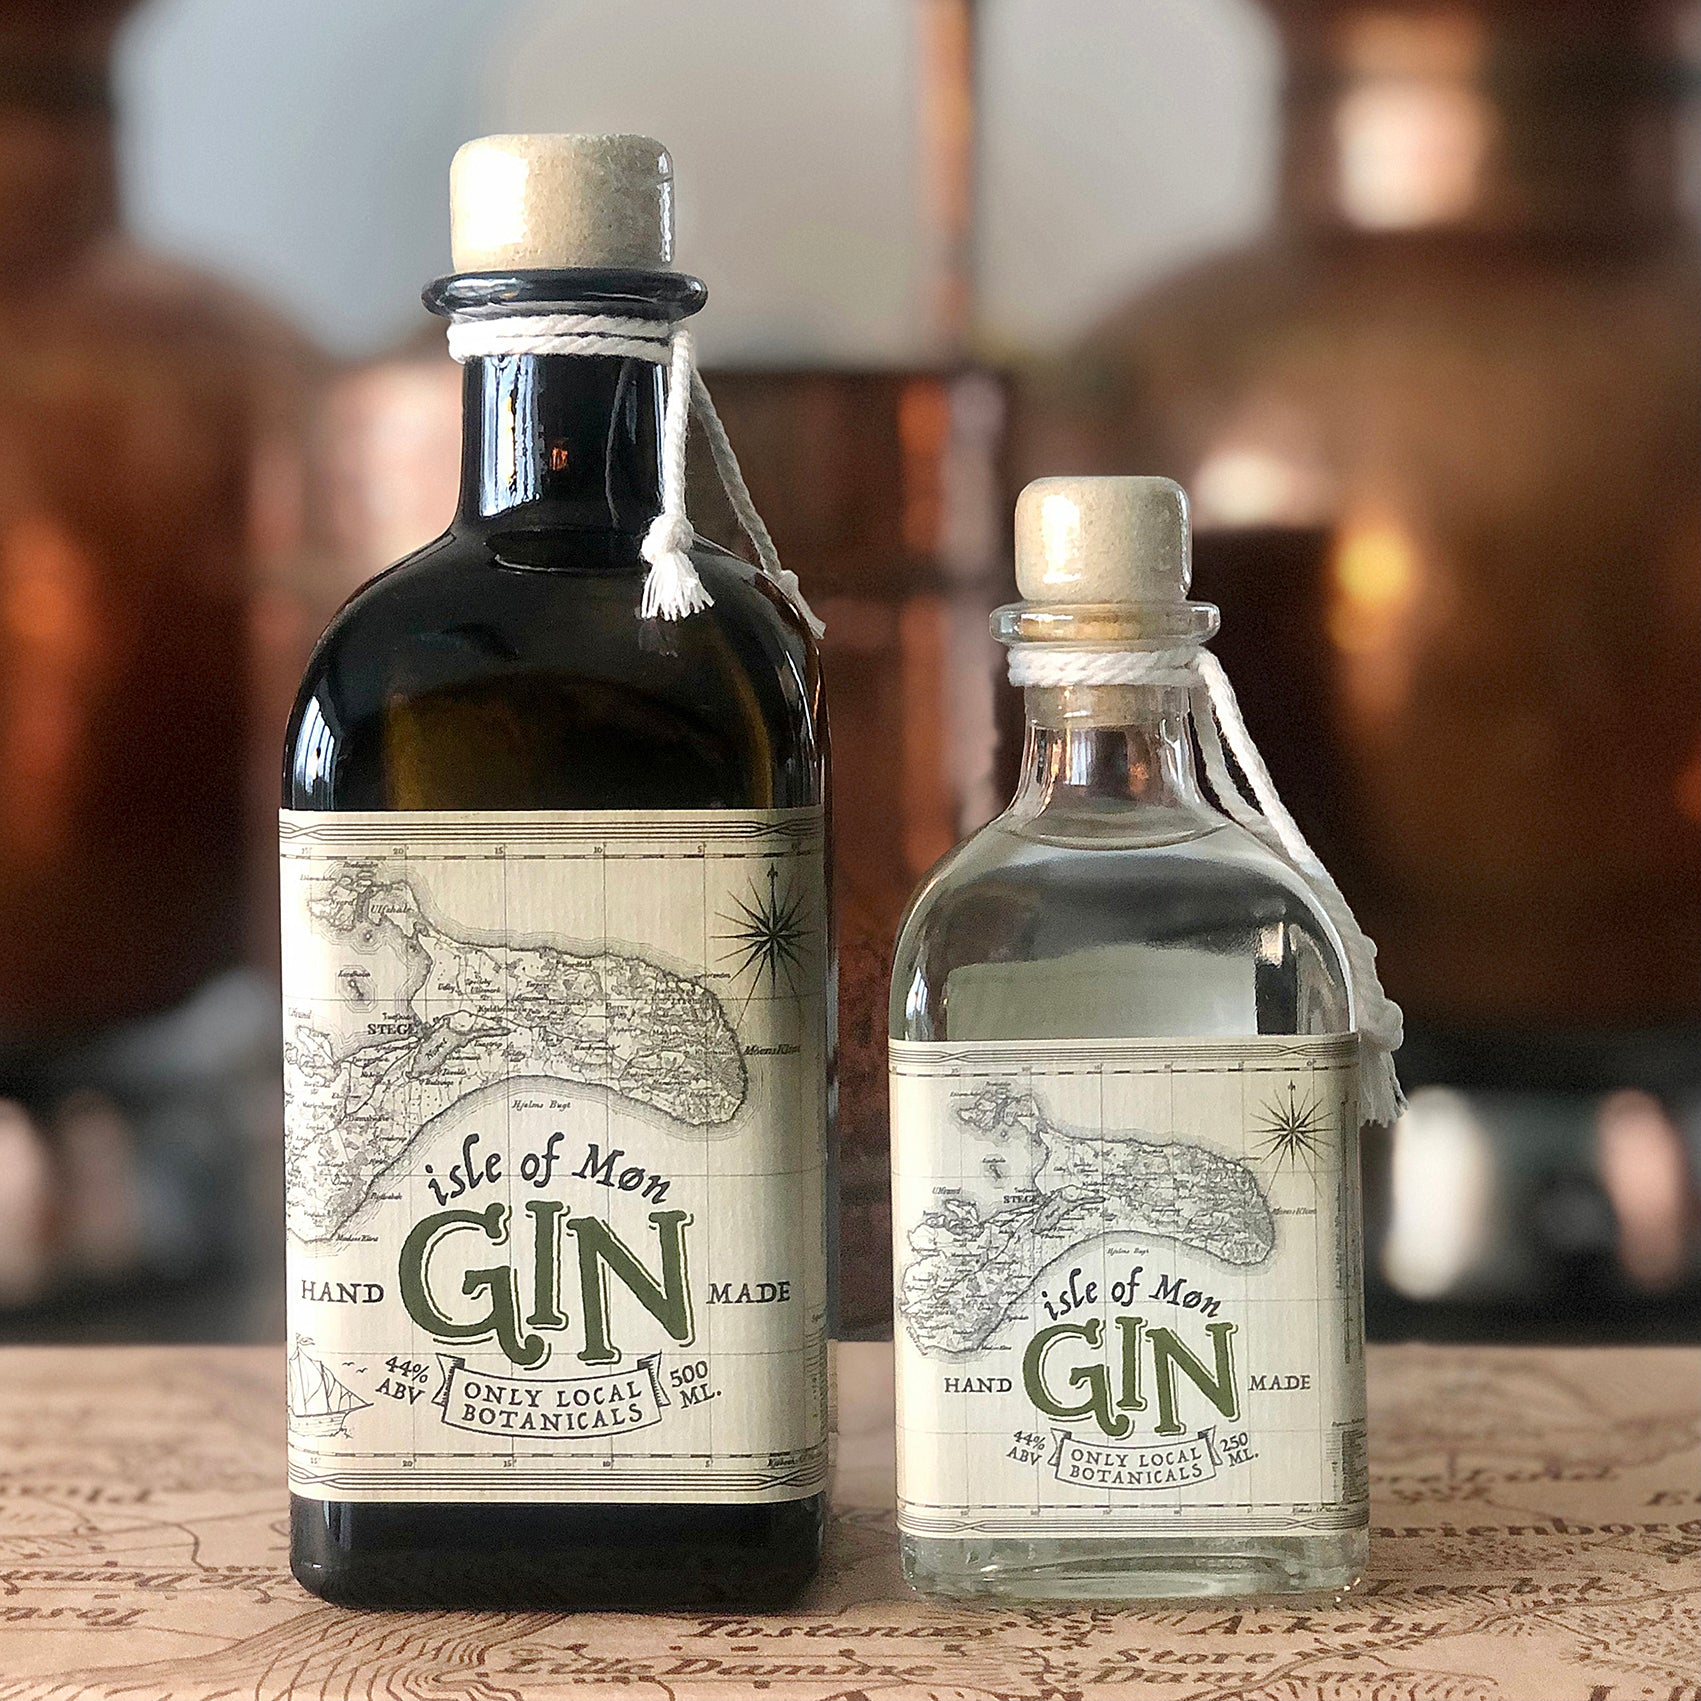 Isle of Møn Gin - Isle of Møn Spirits